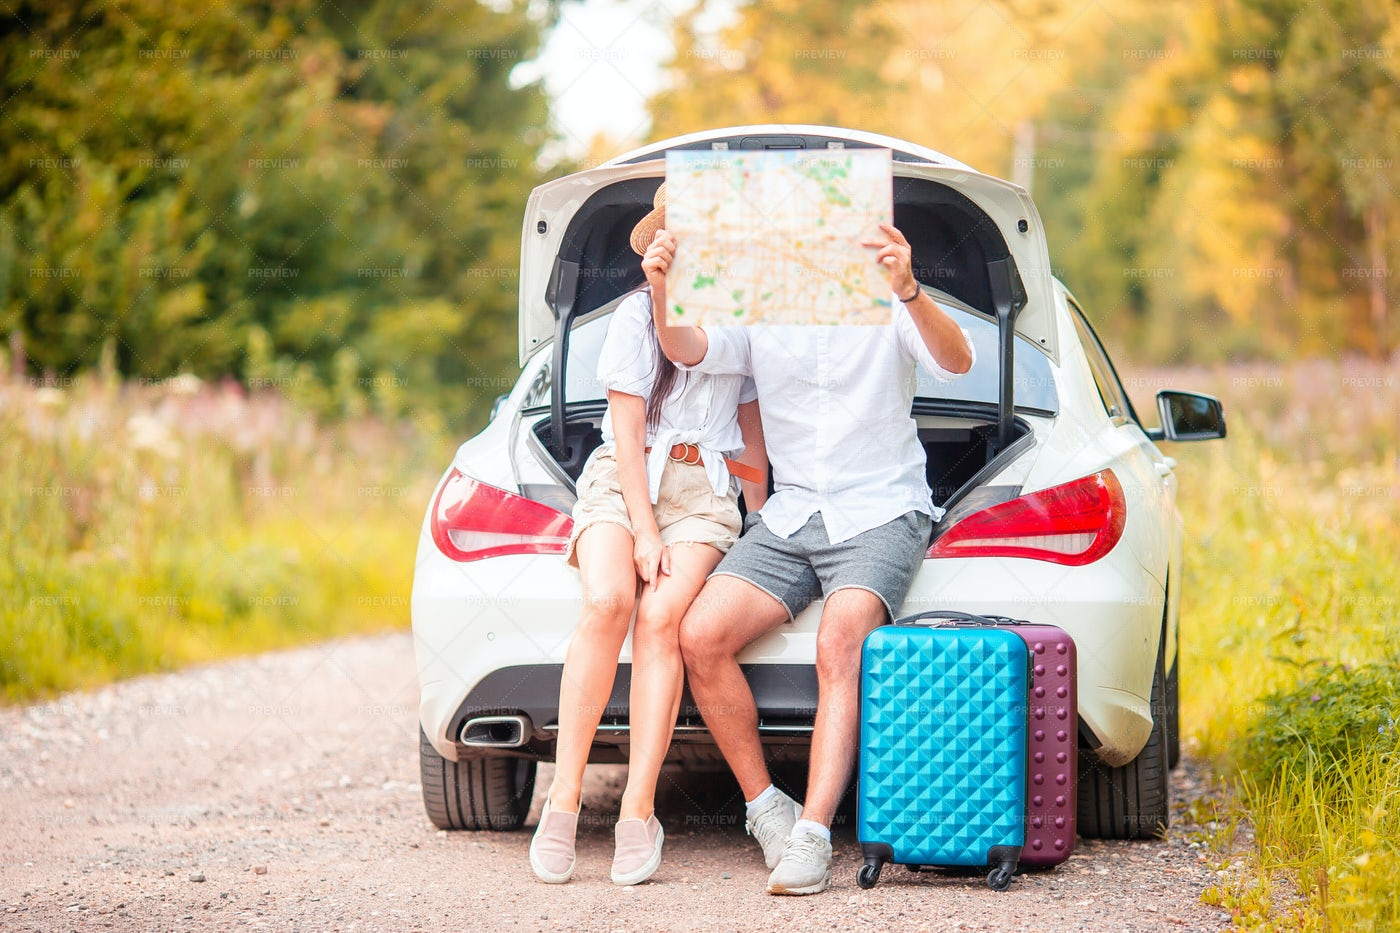 Reading A Map In The Car Trunk: Stock Photos